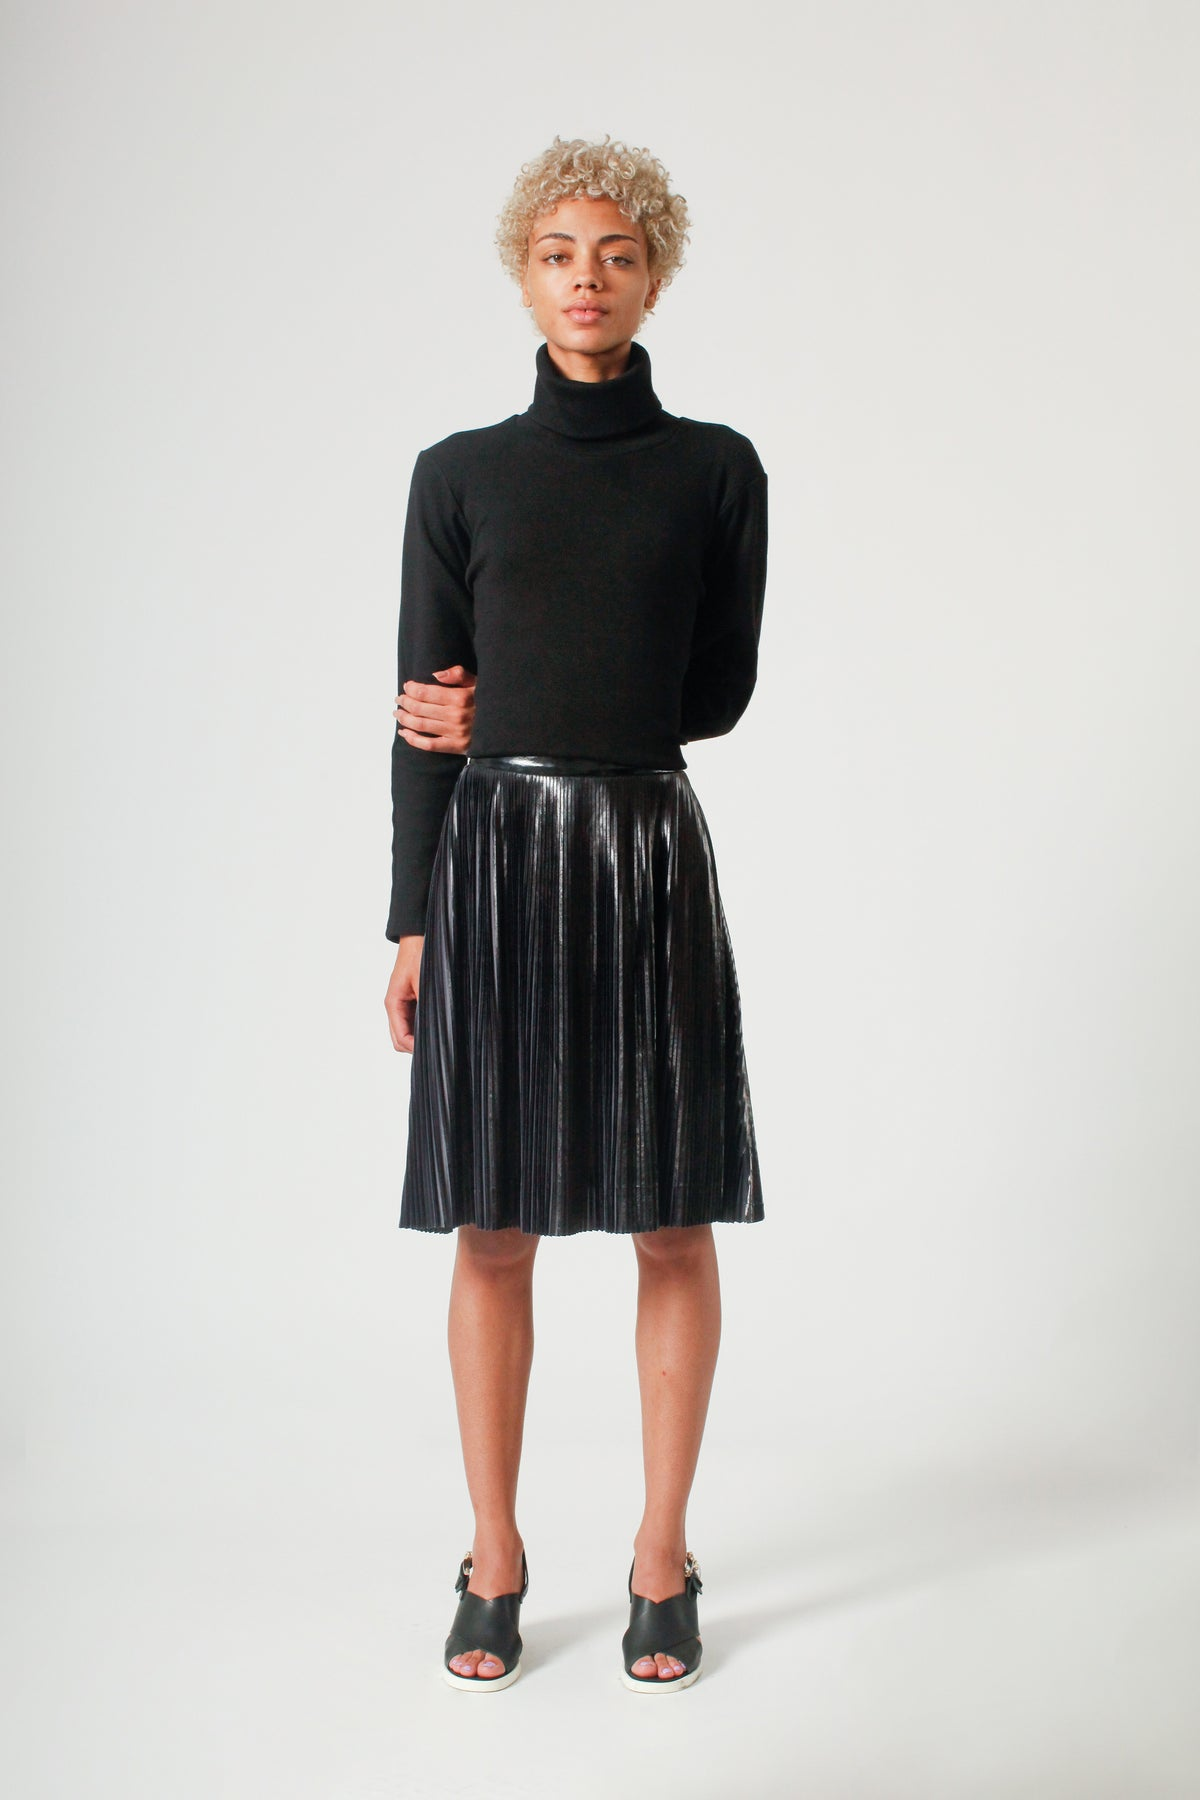 The Pleated PVC Short Skirt